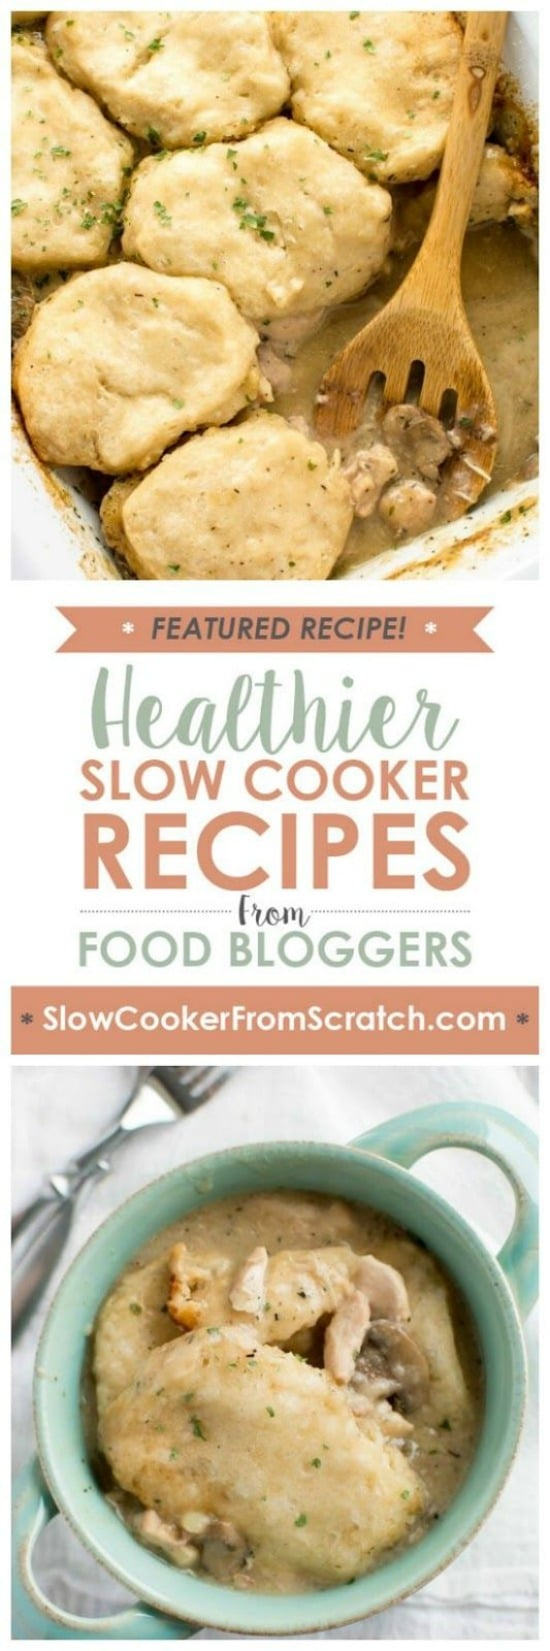 Slow Cooker Chicken Gravy and Biscuits from Slow Cooker Gourmet featured on Slow Cooker or Pressure Cooker at SlowCookerFromScratch